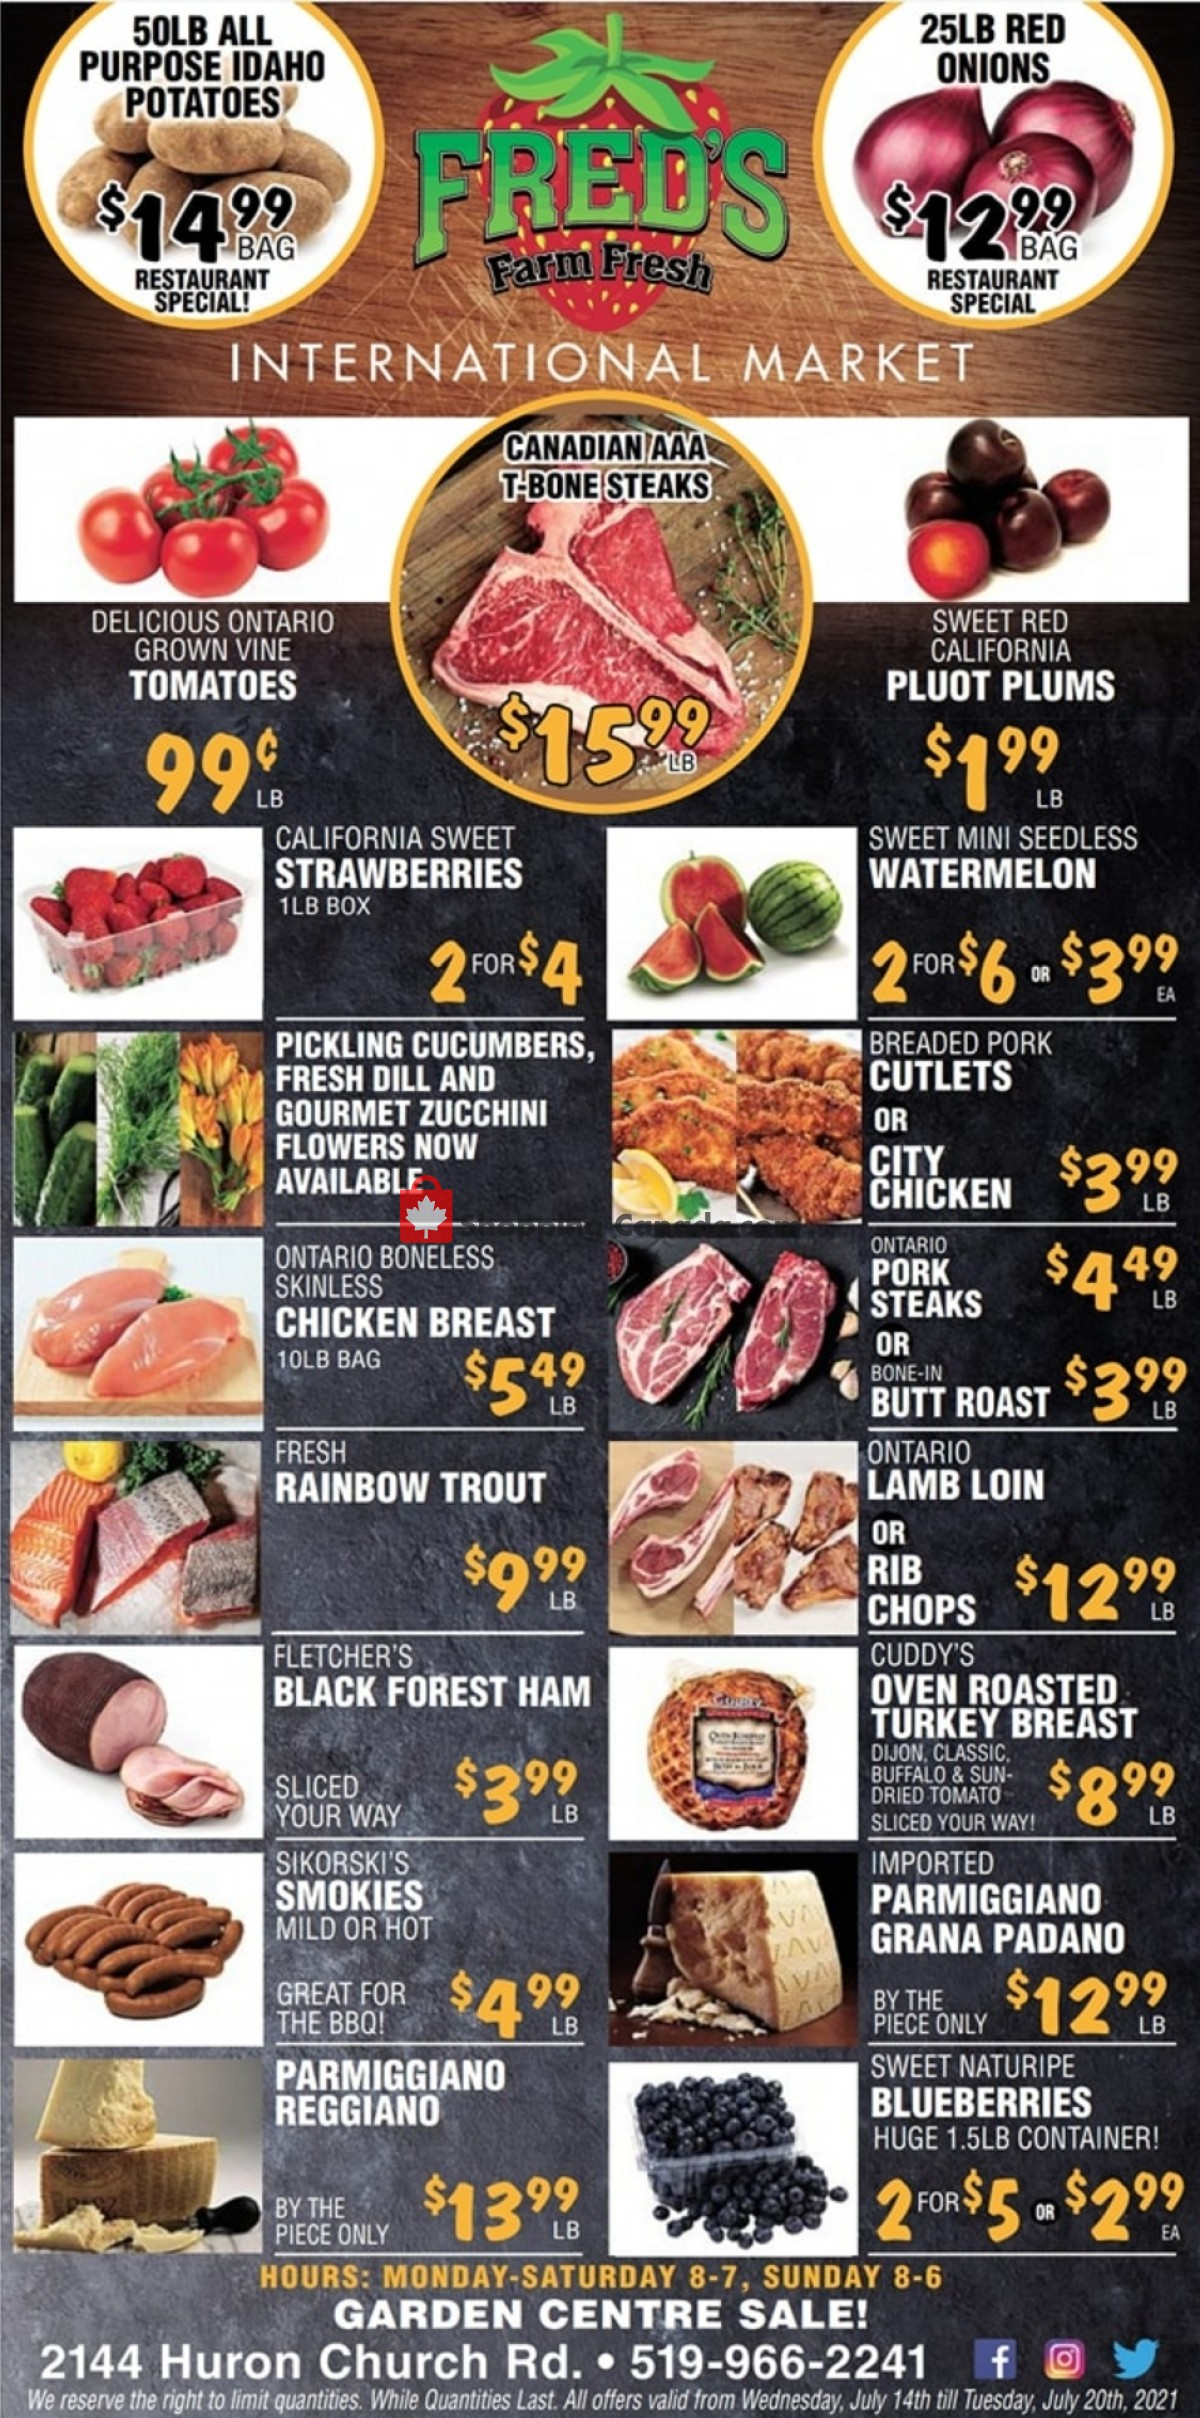 Flyer Fred's Farm Fresh Canada - from Wednesday July 14, 2021 to Tuesday July 20, 2021